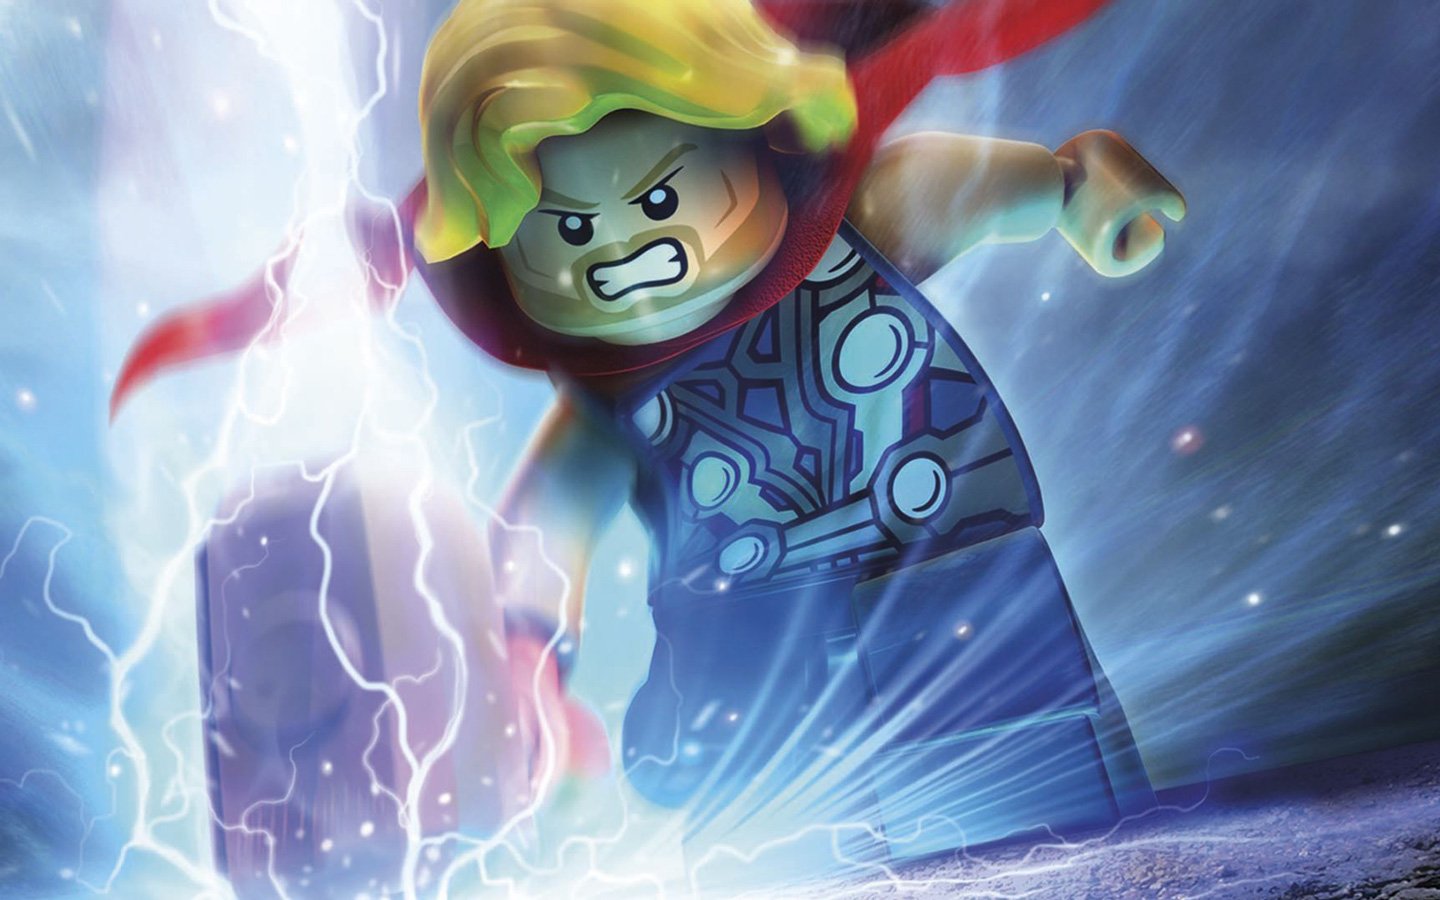 Free Lego Marvel Super Heroes Wallpaper in 1440x900